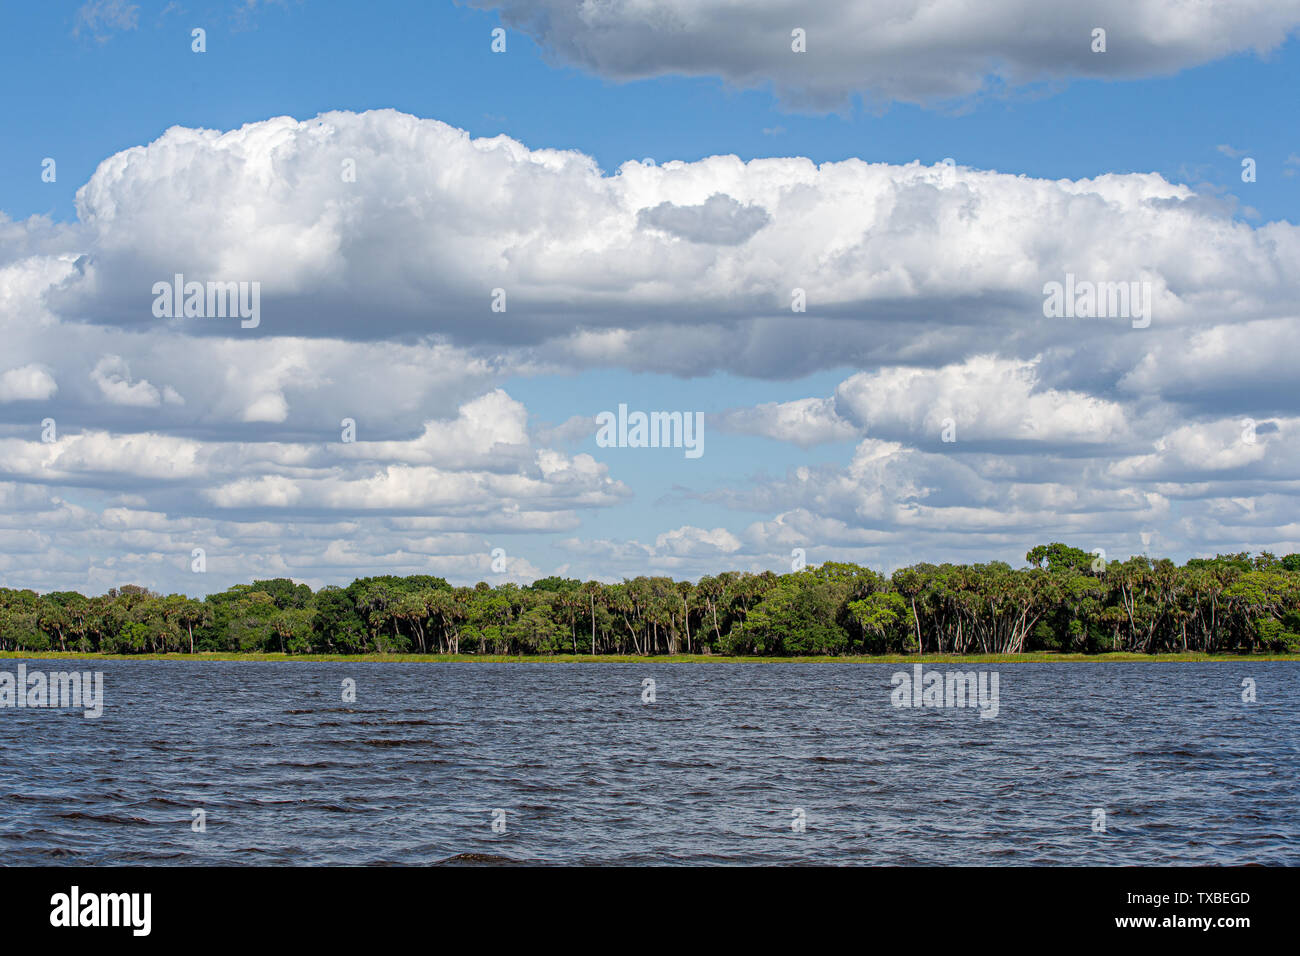 Lake, shoreline trees, and blue sky with clouds and copy space if needed.  Nature, vacation, travel background. - Stock Image